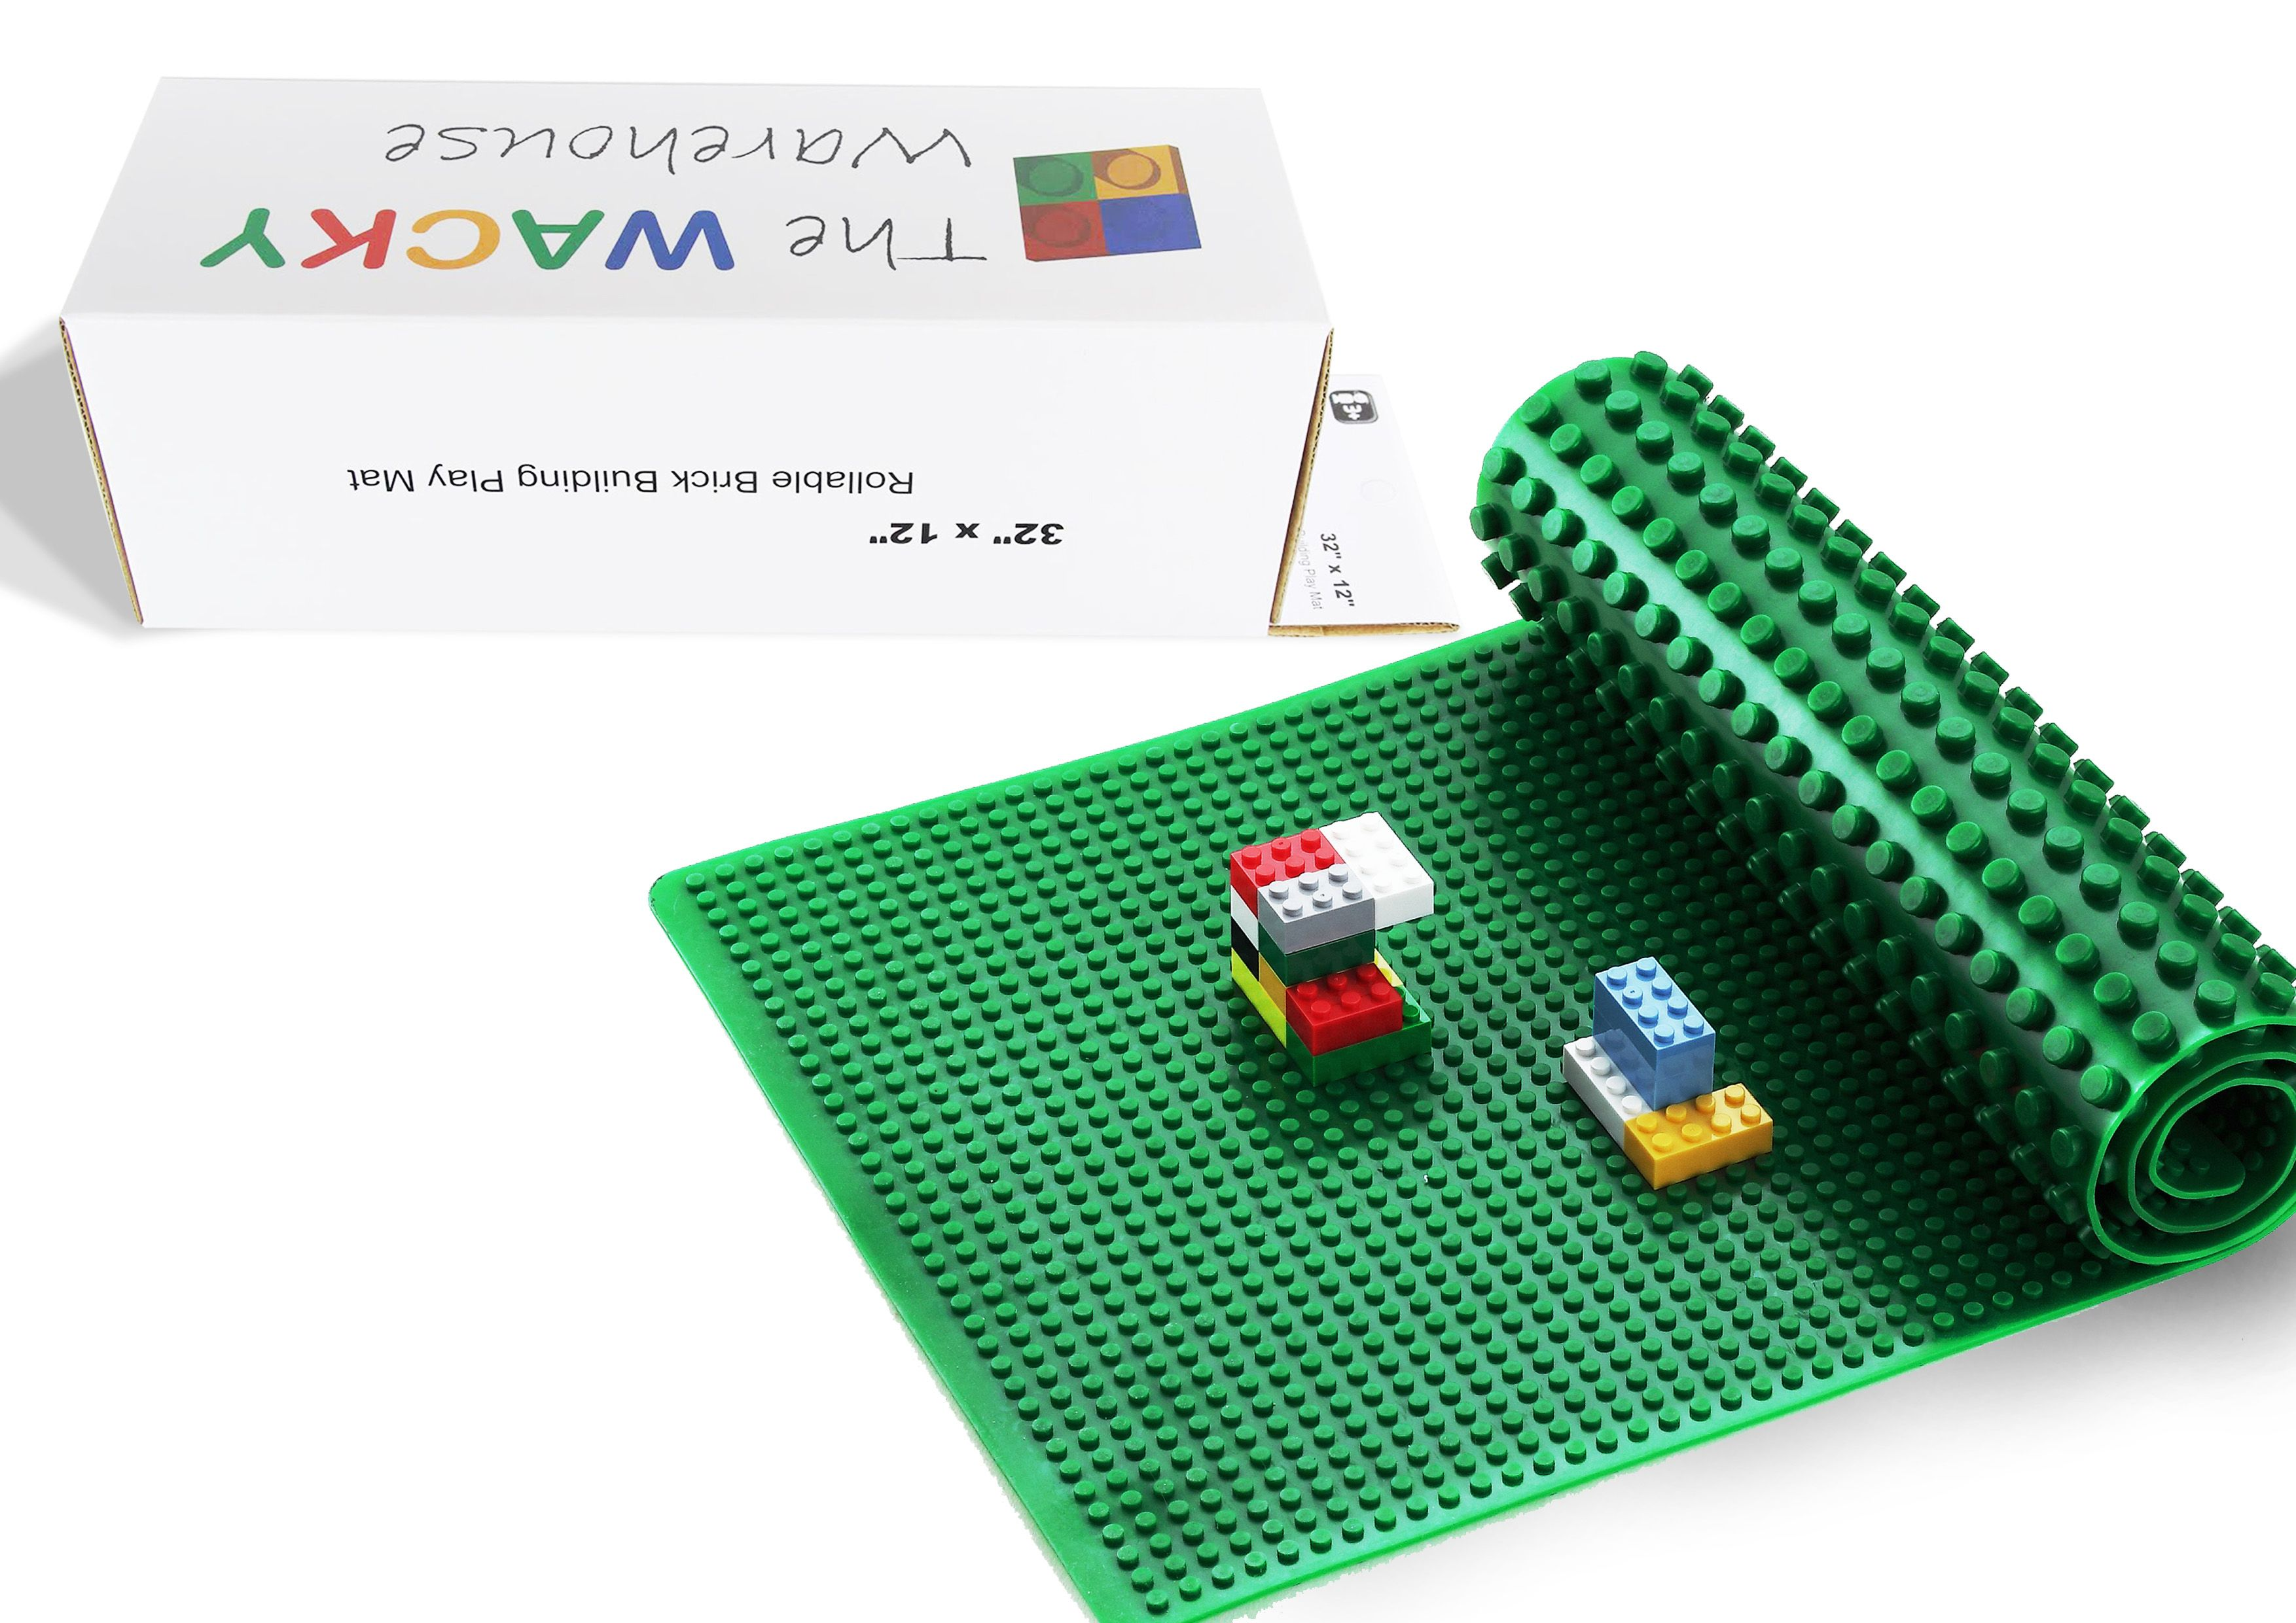 Lego Table Building Plates